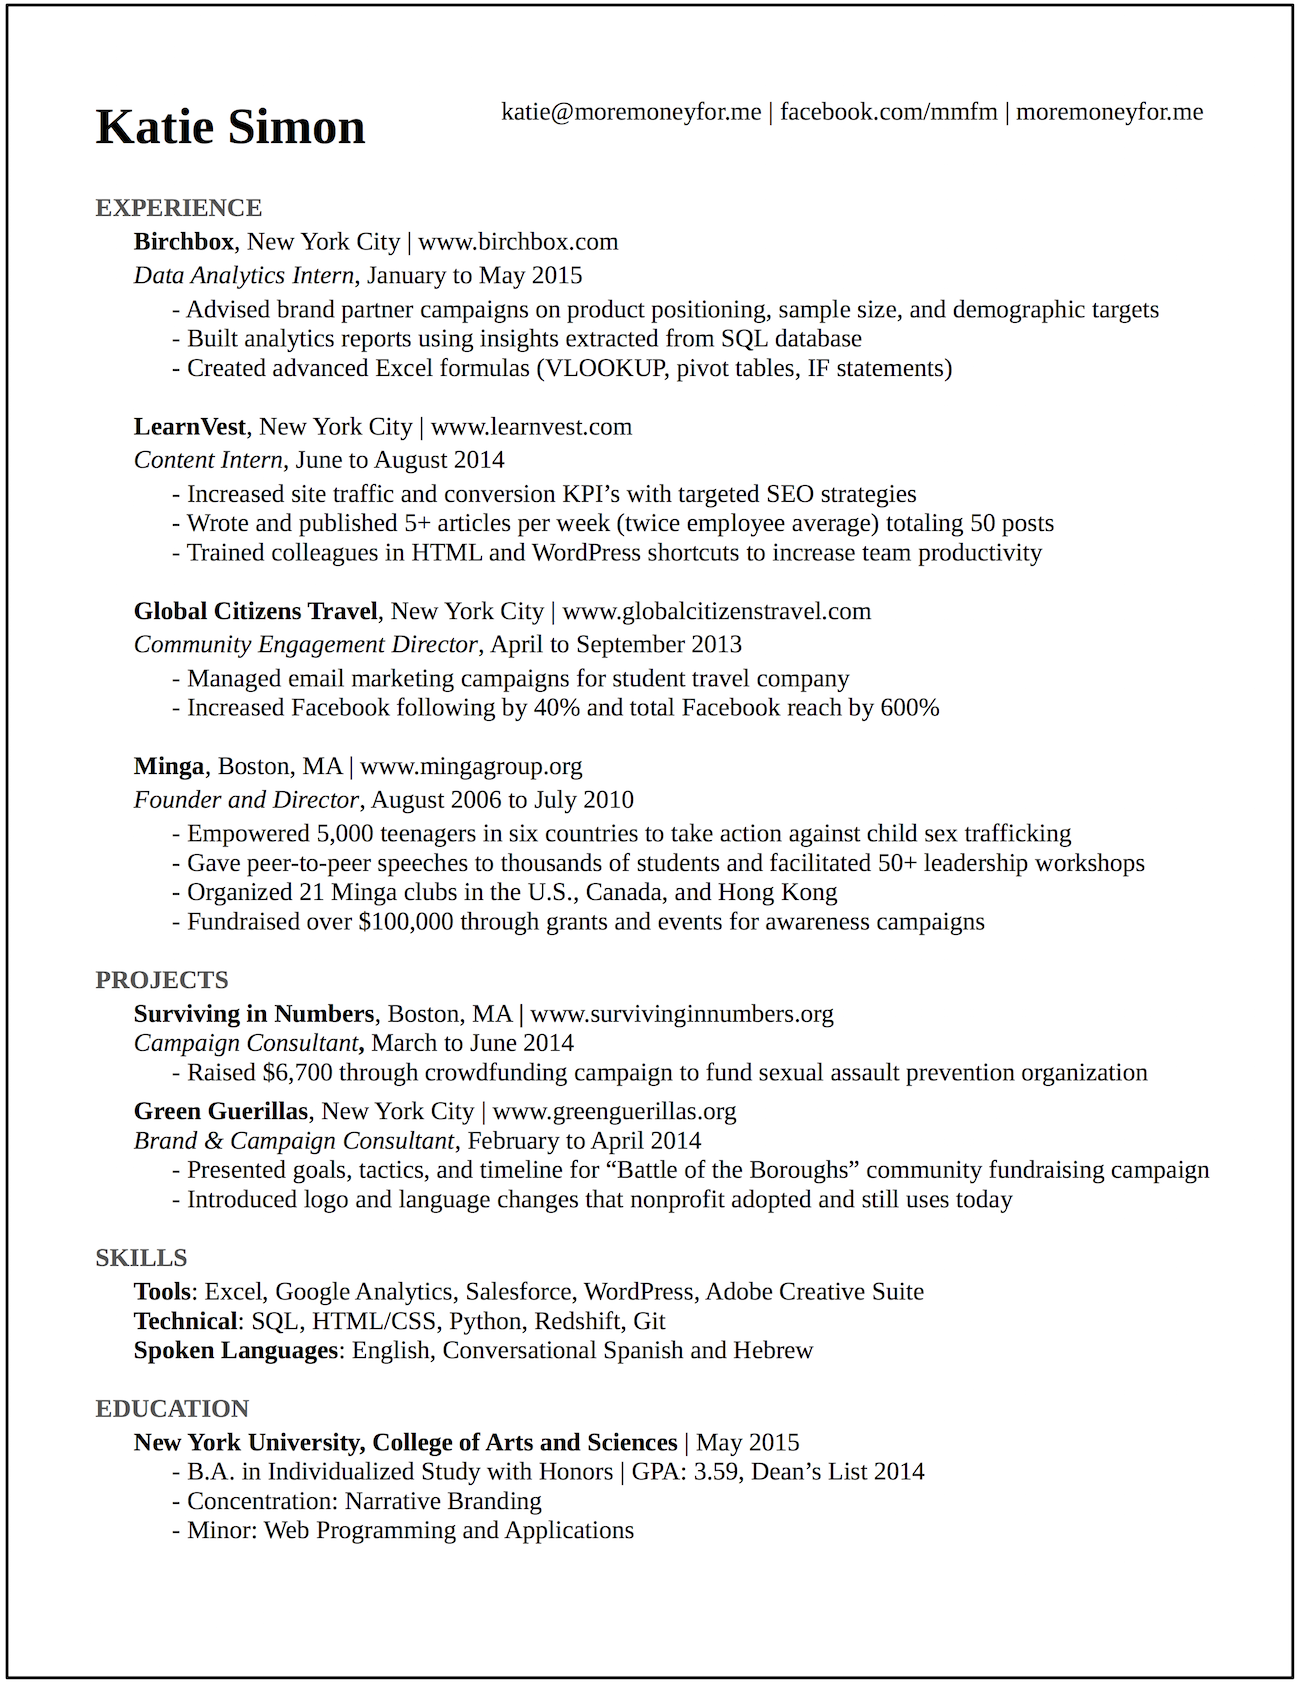 This Résumé Landed Me Interviews At Google, BuzzFeed, And More Than 20 Top  Startups  Resume Me